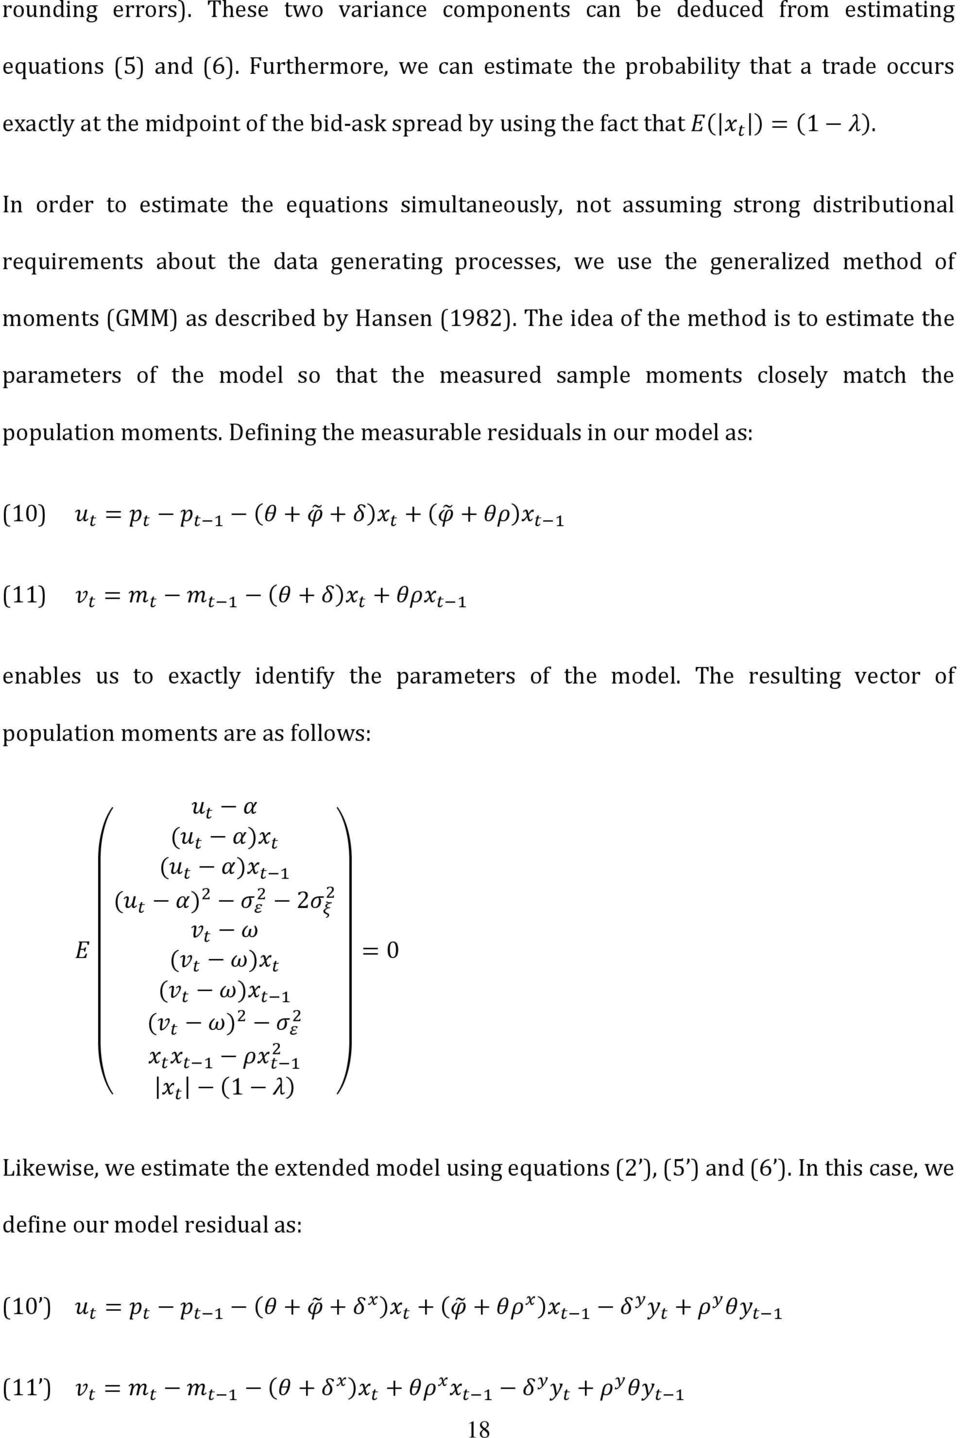 In order to estimate the equations simultaneously, not assuming strong distributional requirements about the data generating processes, we use the generalized method of moments (GMM) as described by